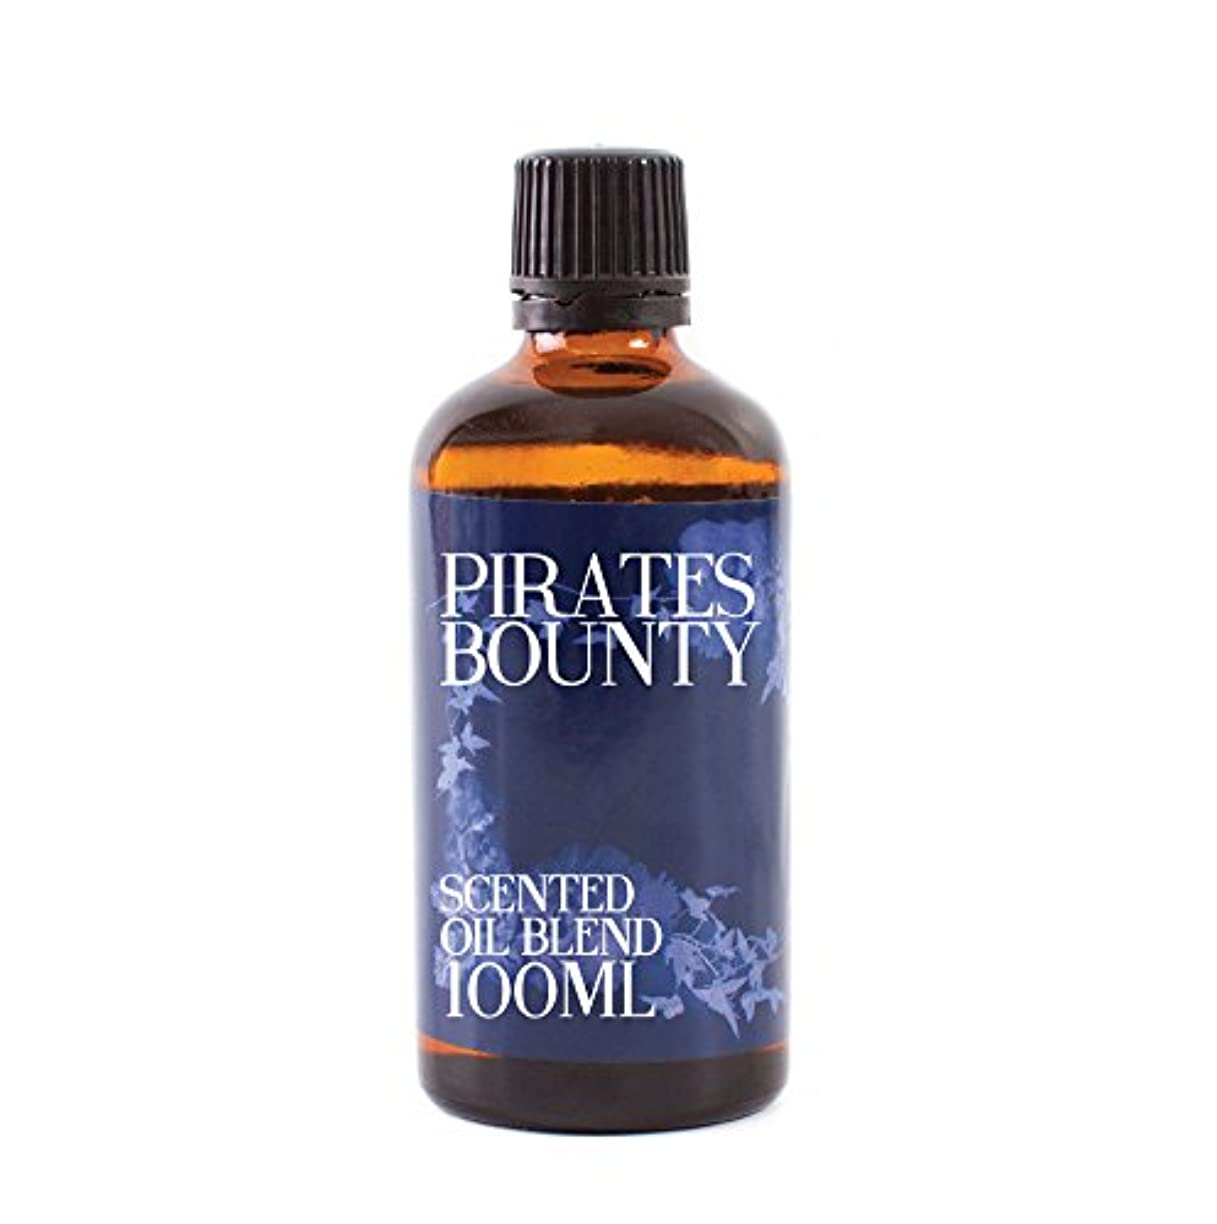 注ぎます古くなった自明Mystic Moments | Pirate's Bounty - Scented Oil Blend - 100ml